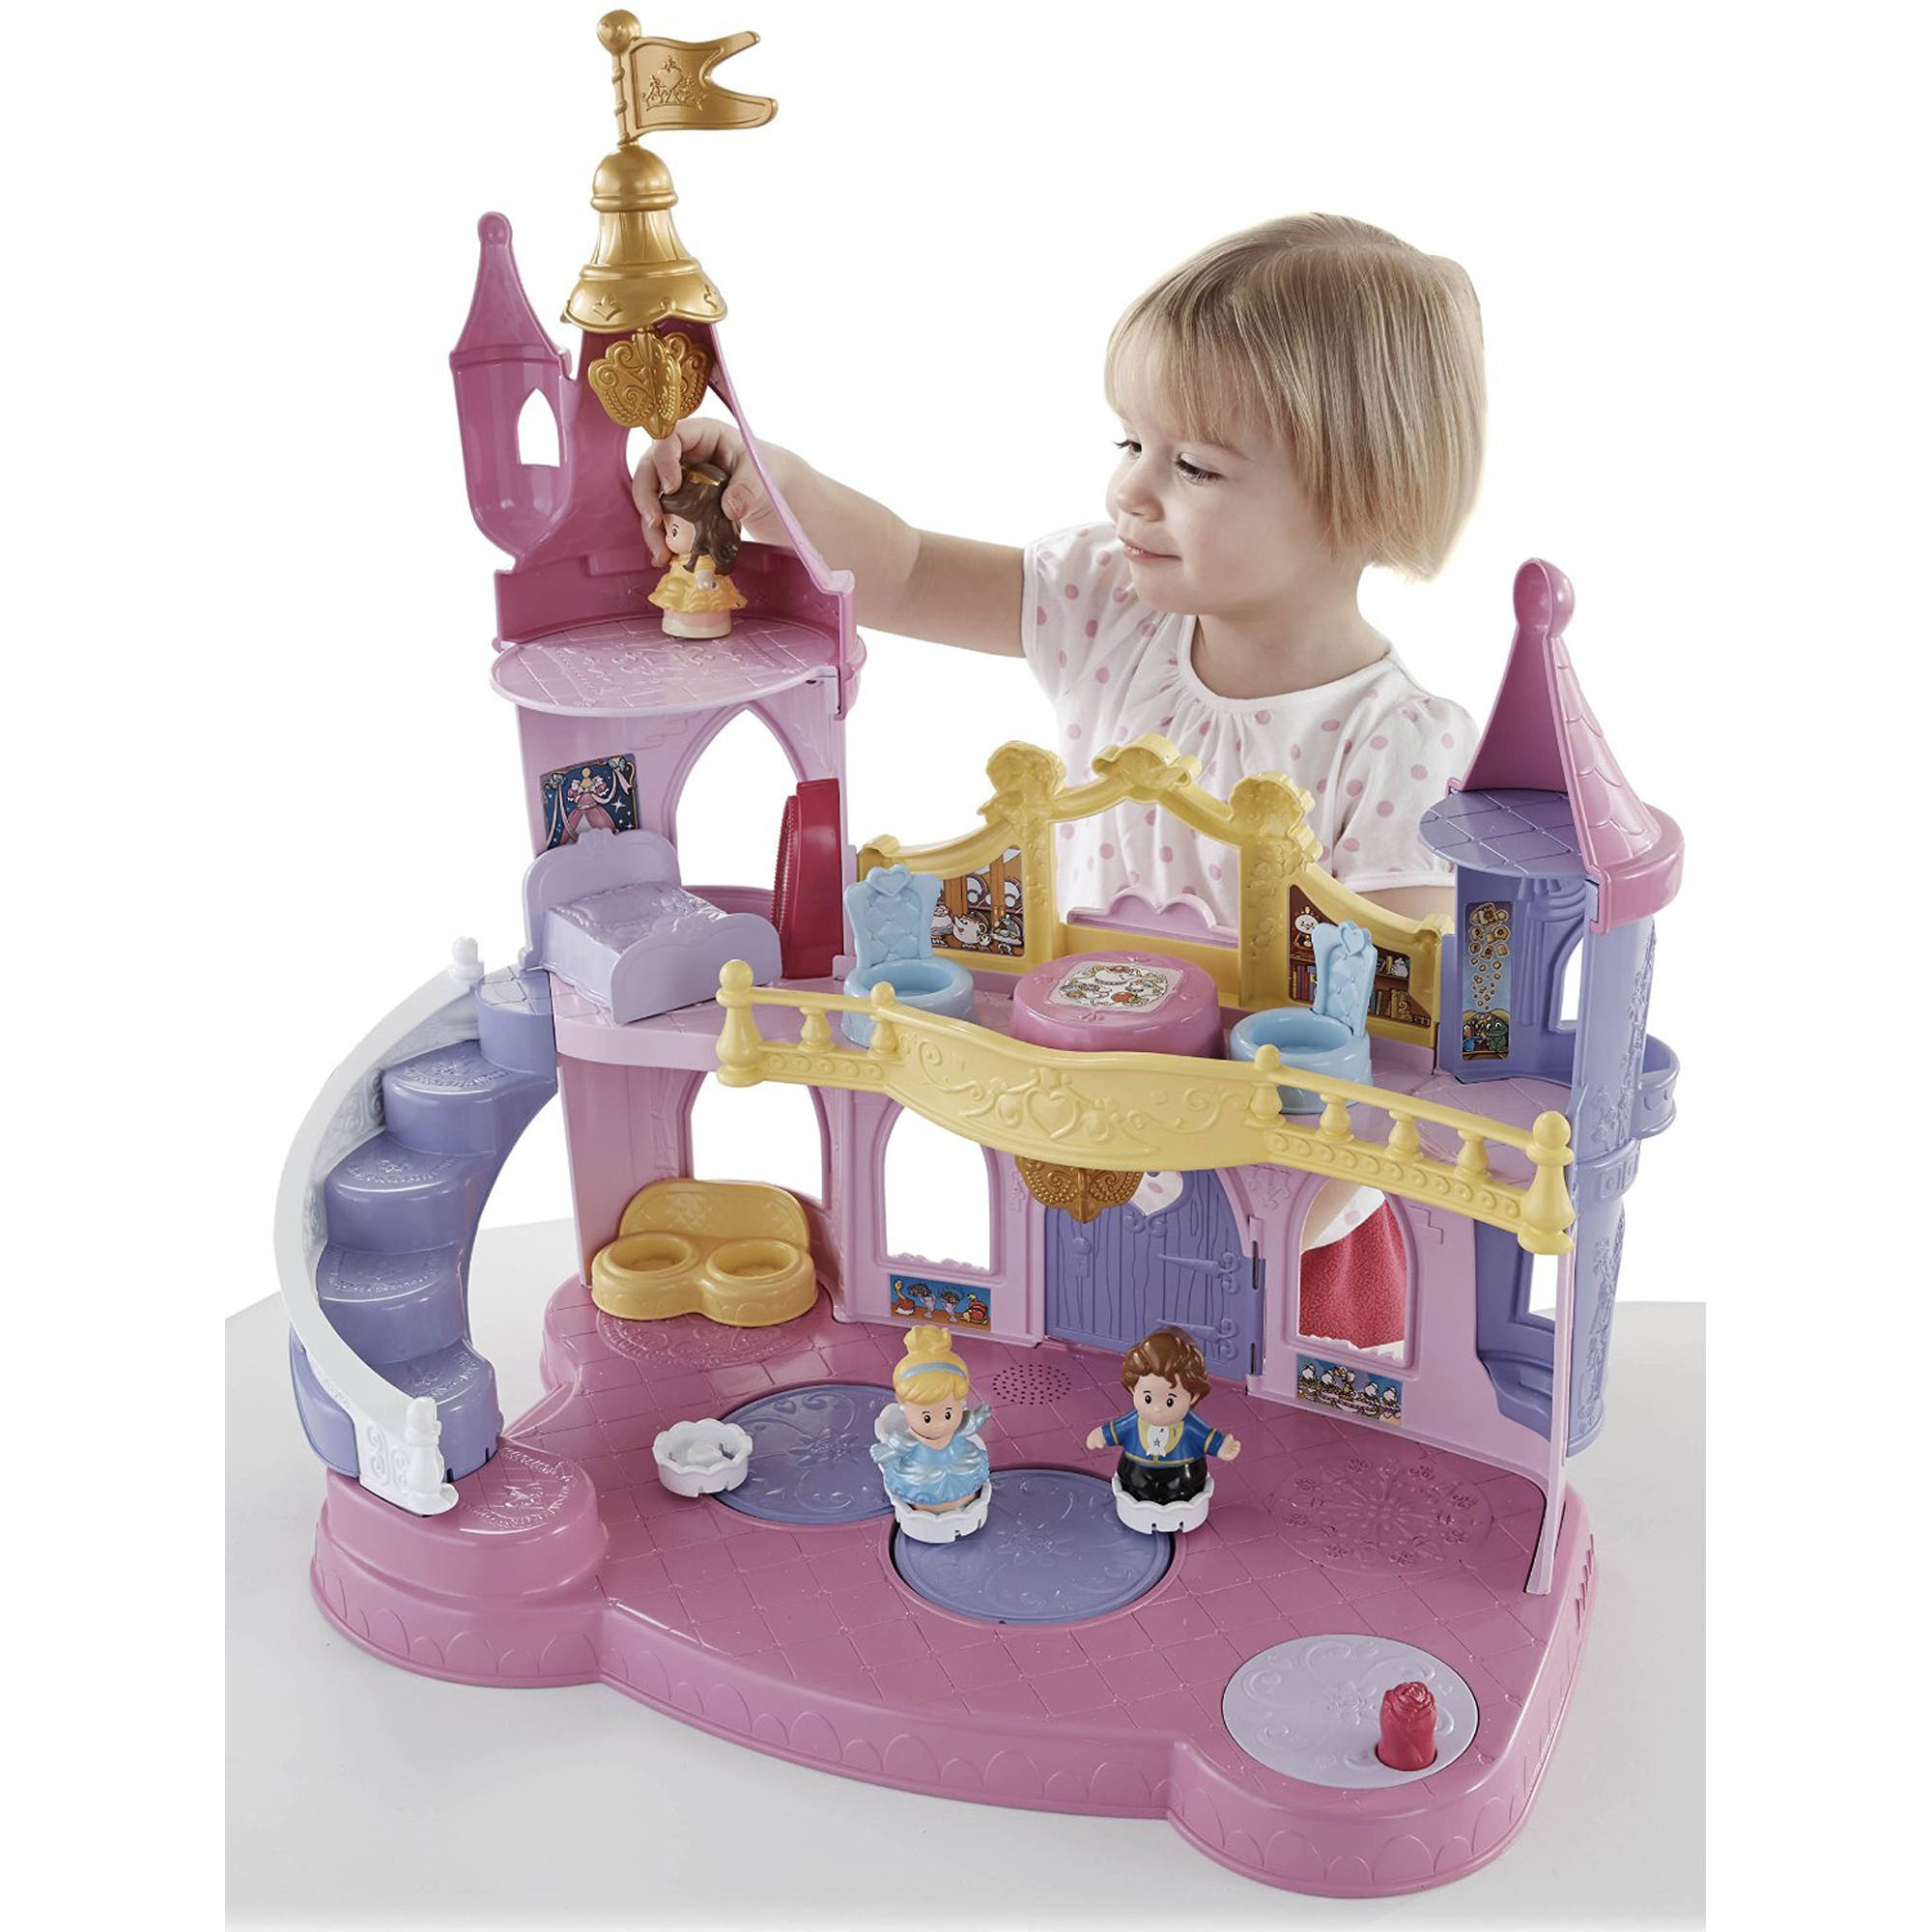 Disney Princess Musical Dancing Palace by Little People